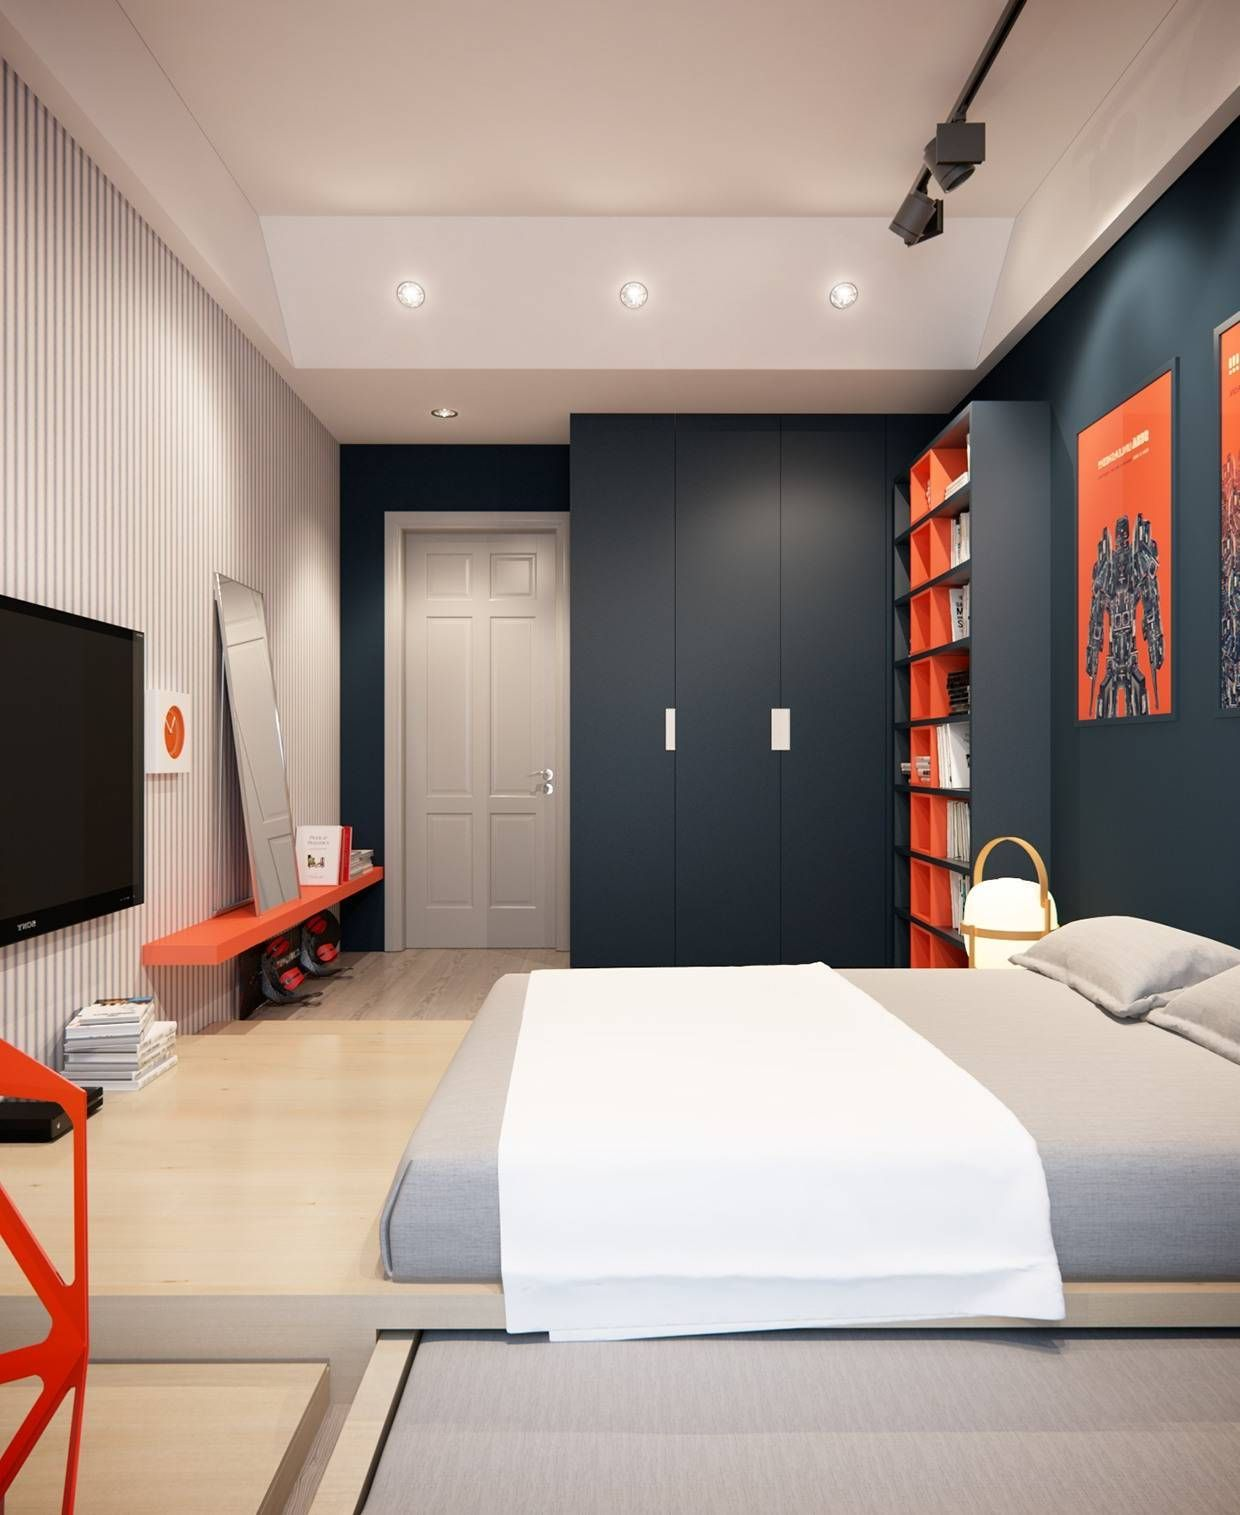 20 Cool Boys Bedroom Ideas To Try At Home Boy Bedroom Design